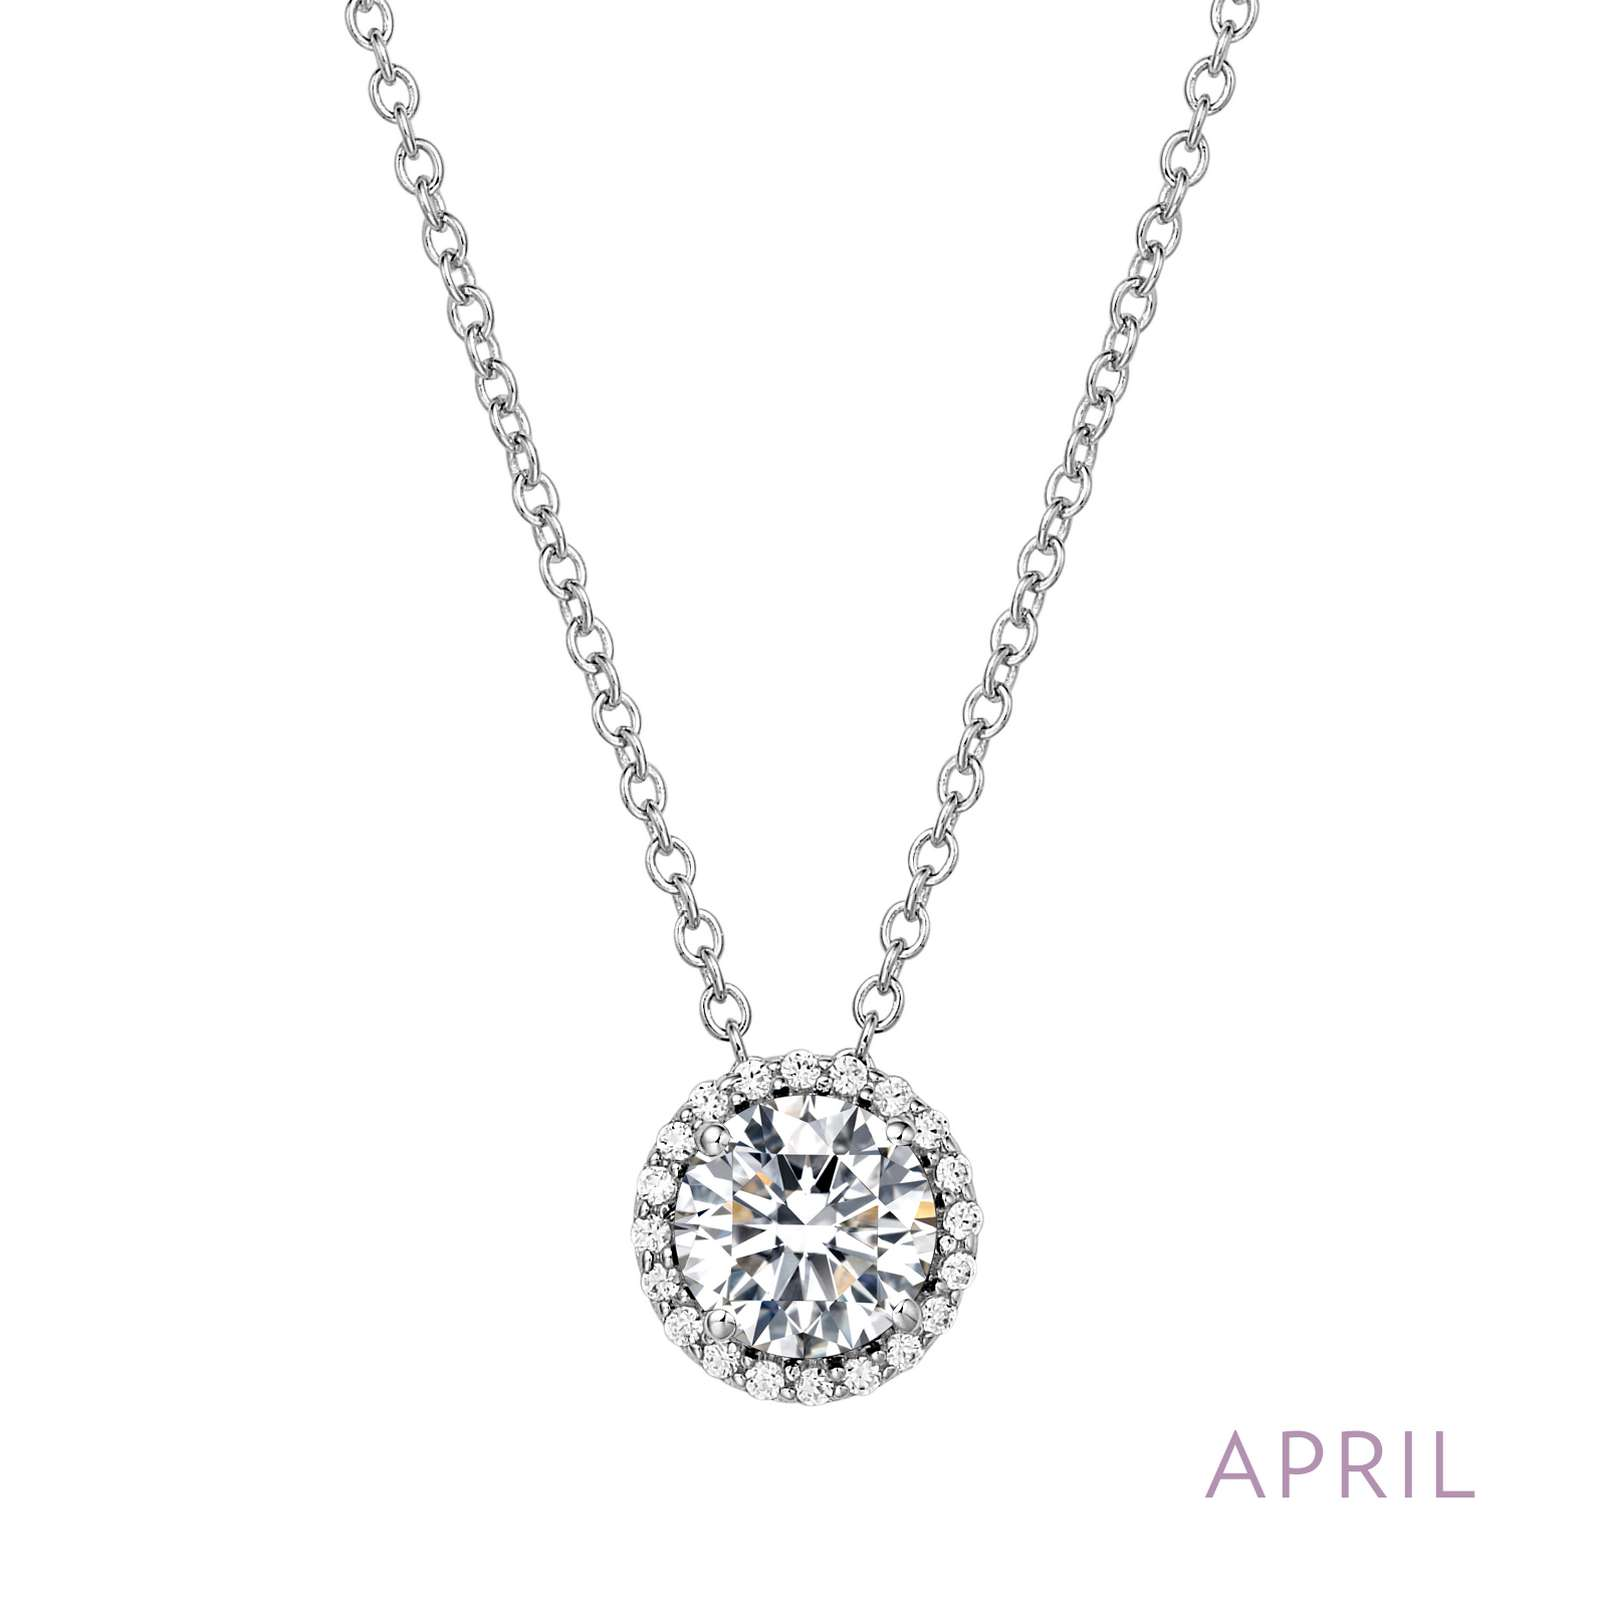 April - Diamond.  Adorn yourself with Lafonn's birthstone jewelry. The necklace is set with, and surrounded by, Lafonn's signature Lassaire simualted diamonds in sterling silver bonded with platinum.